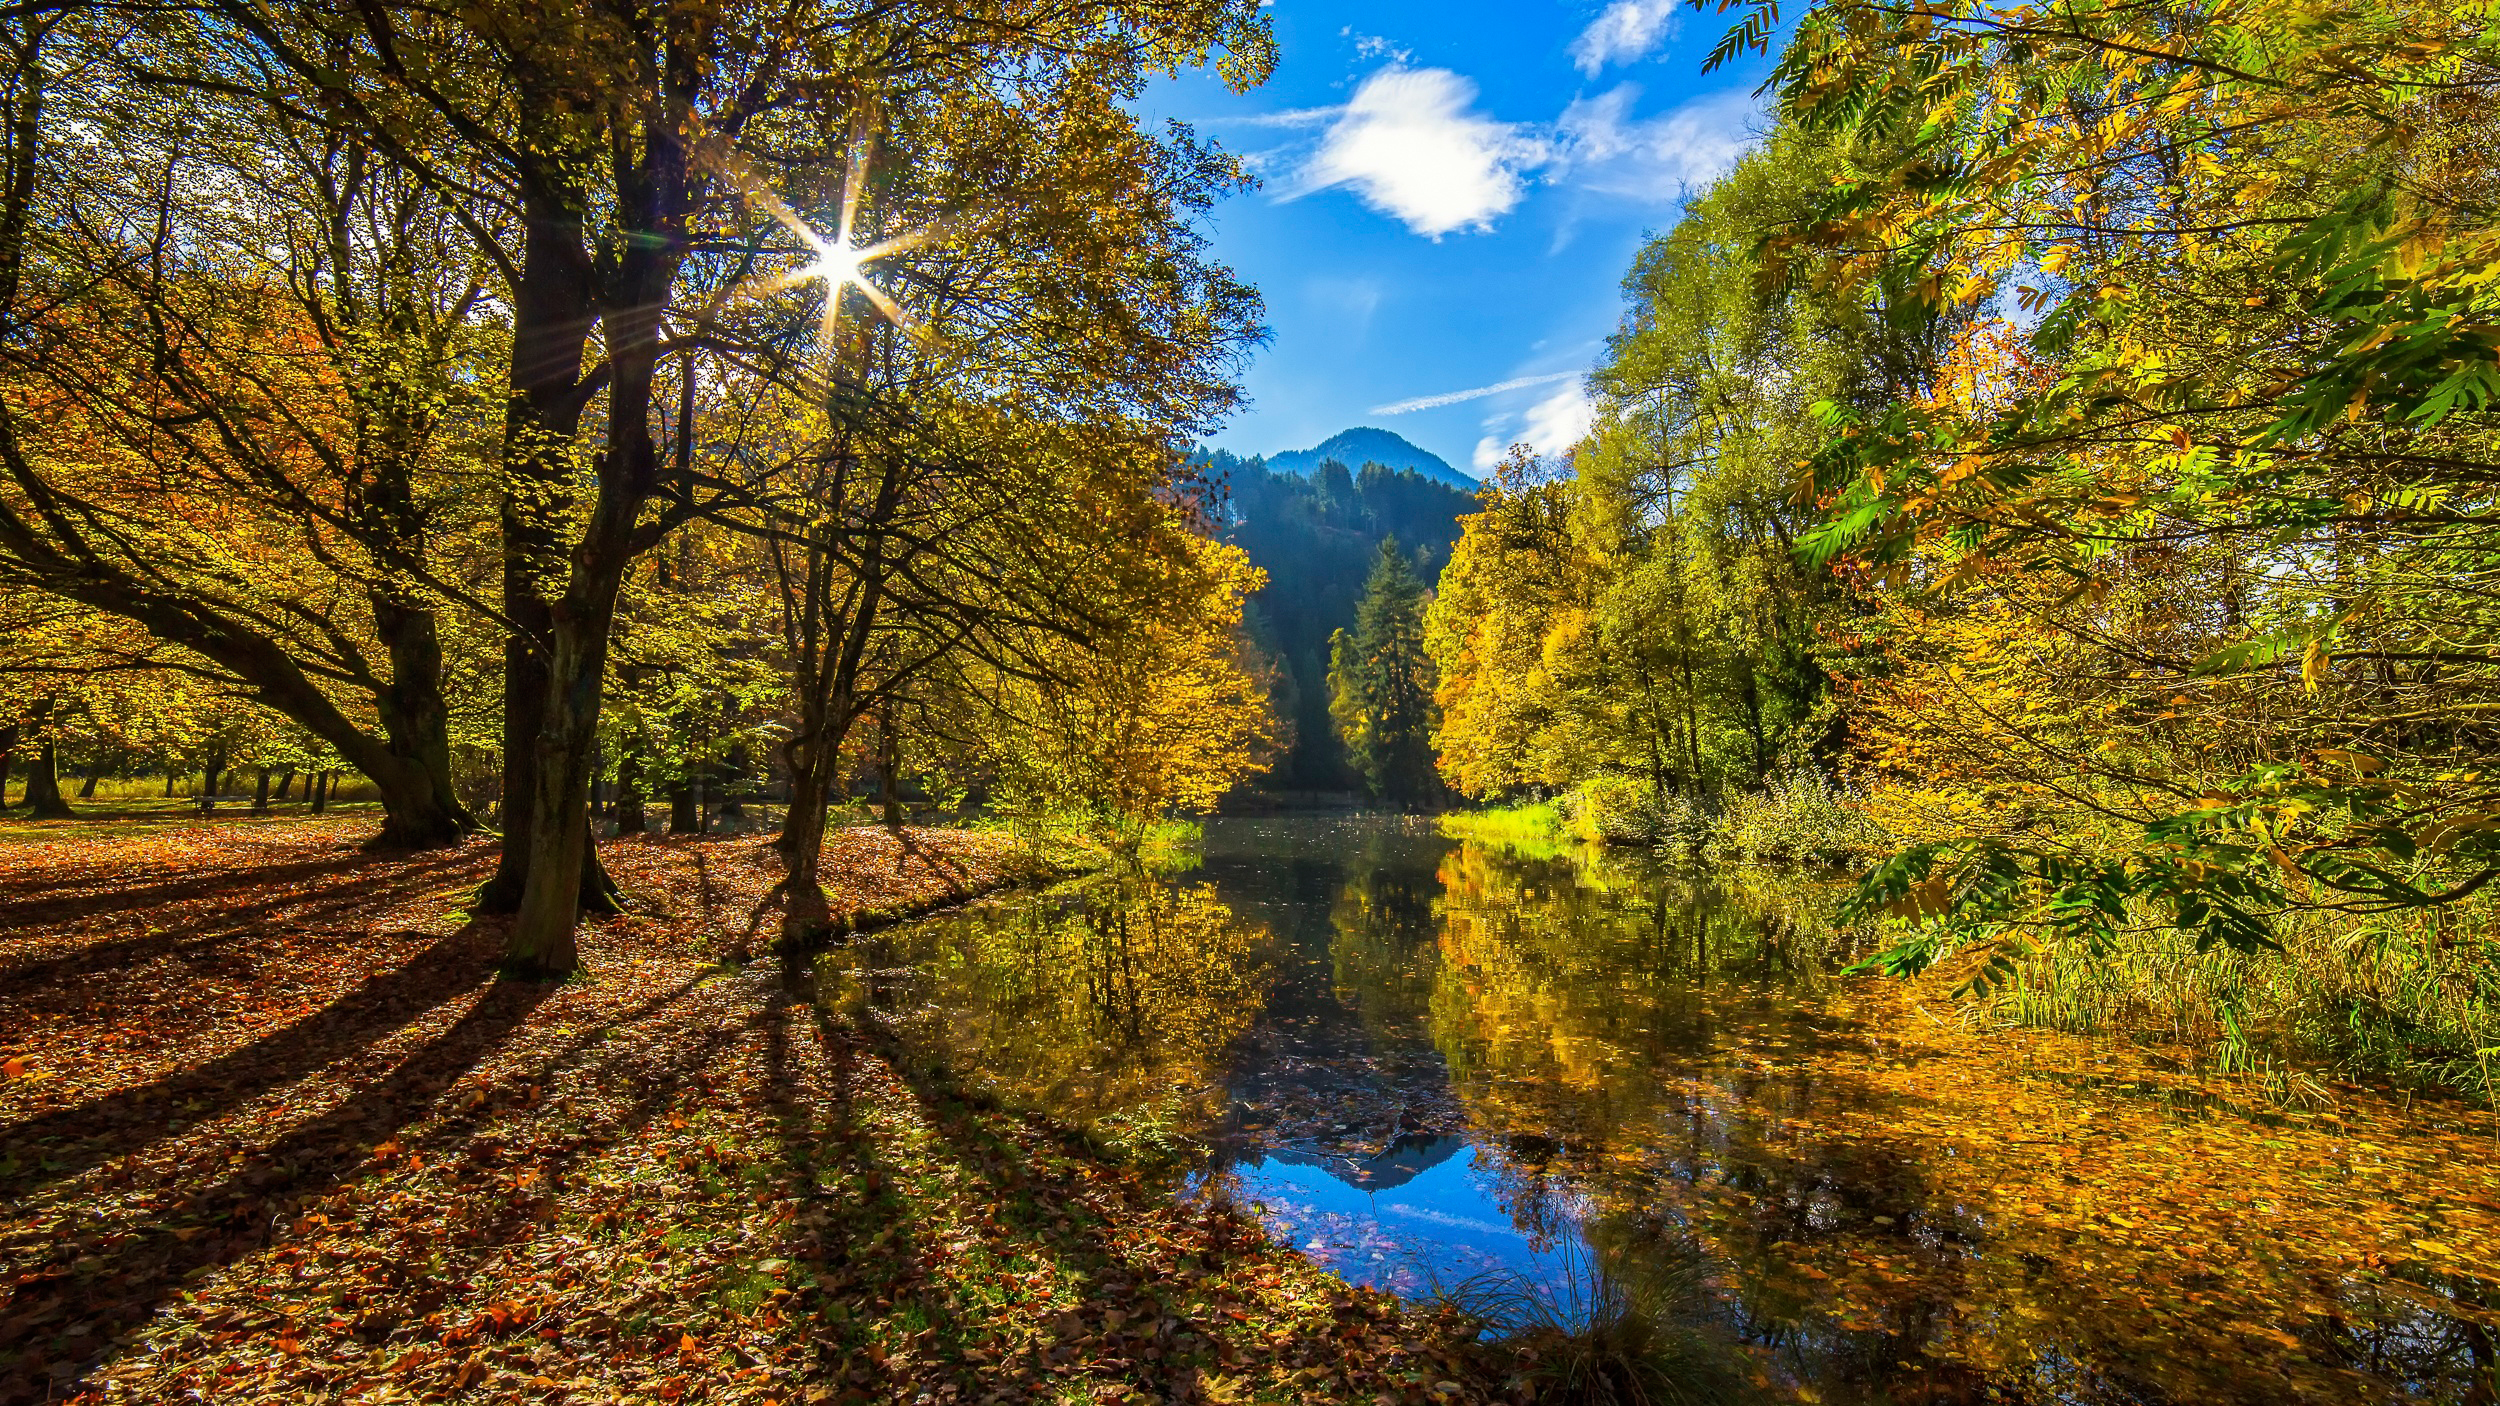 Autumn sun hd wallpaper hintergrund 2500x1406 id for Fond ecran foret